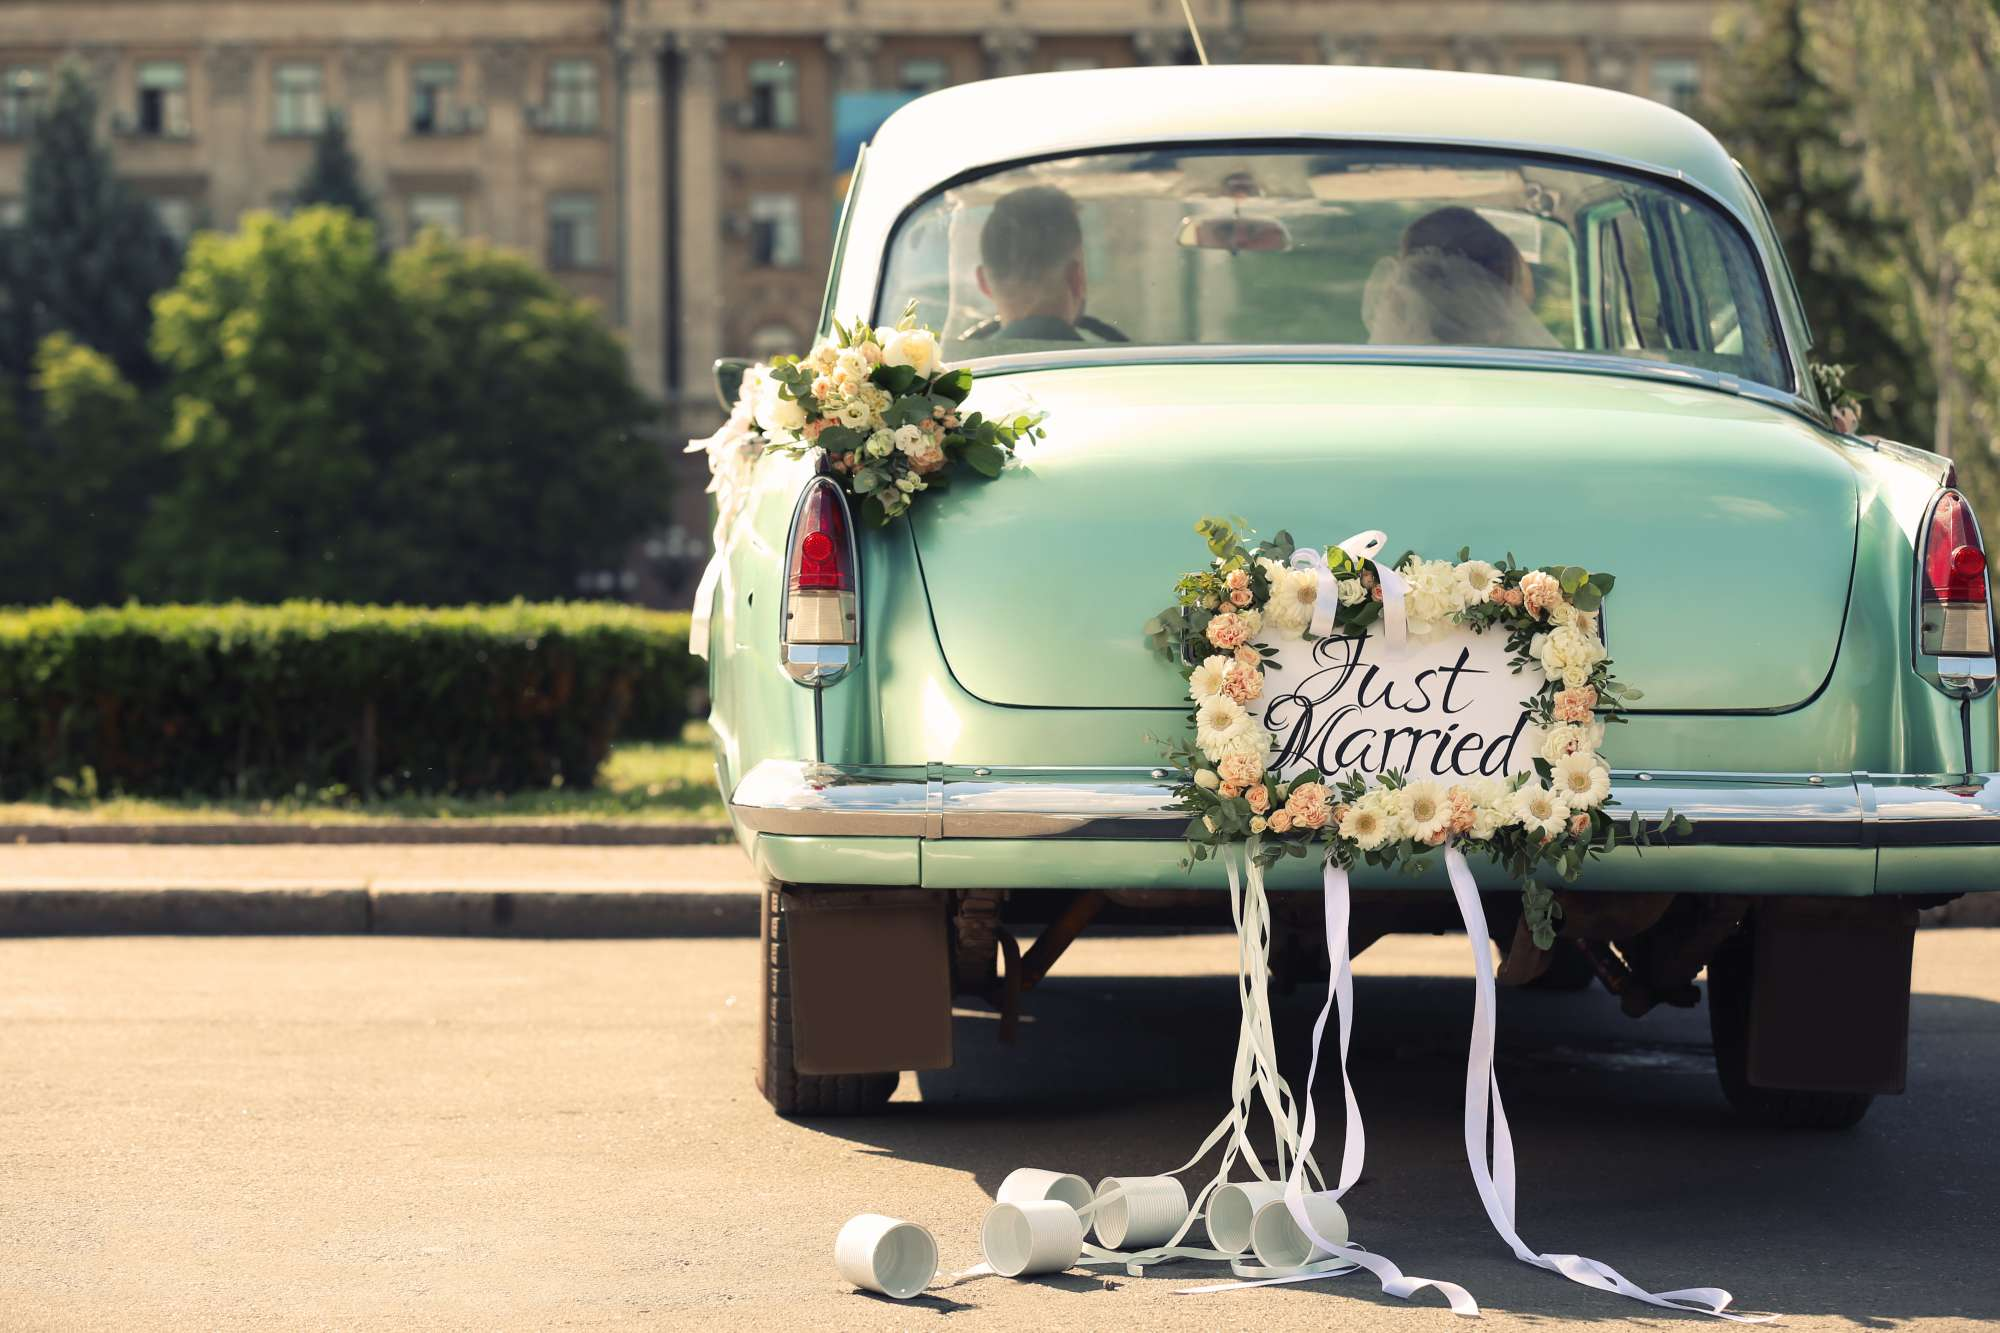 just married sign on vintage cool mint green car